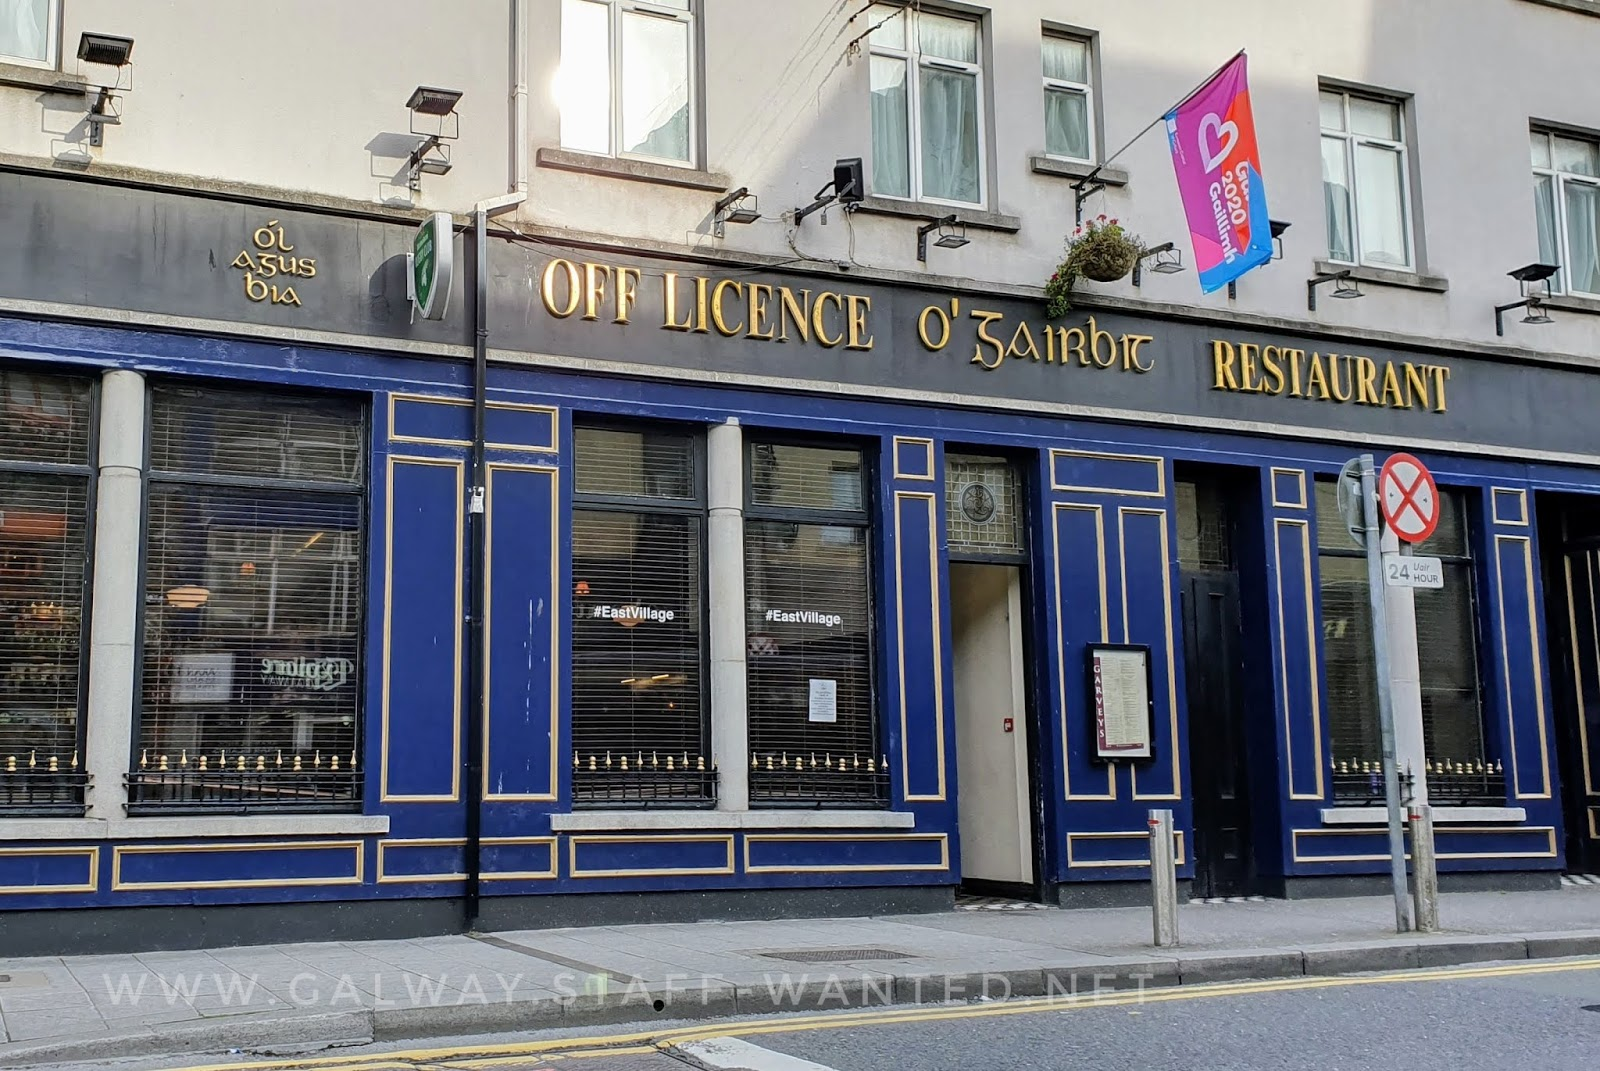 city centre bar displaying purple, blue and orange Galway 2020 flag